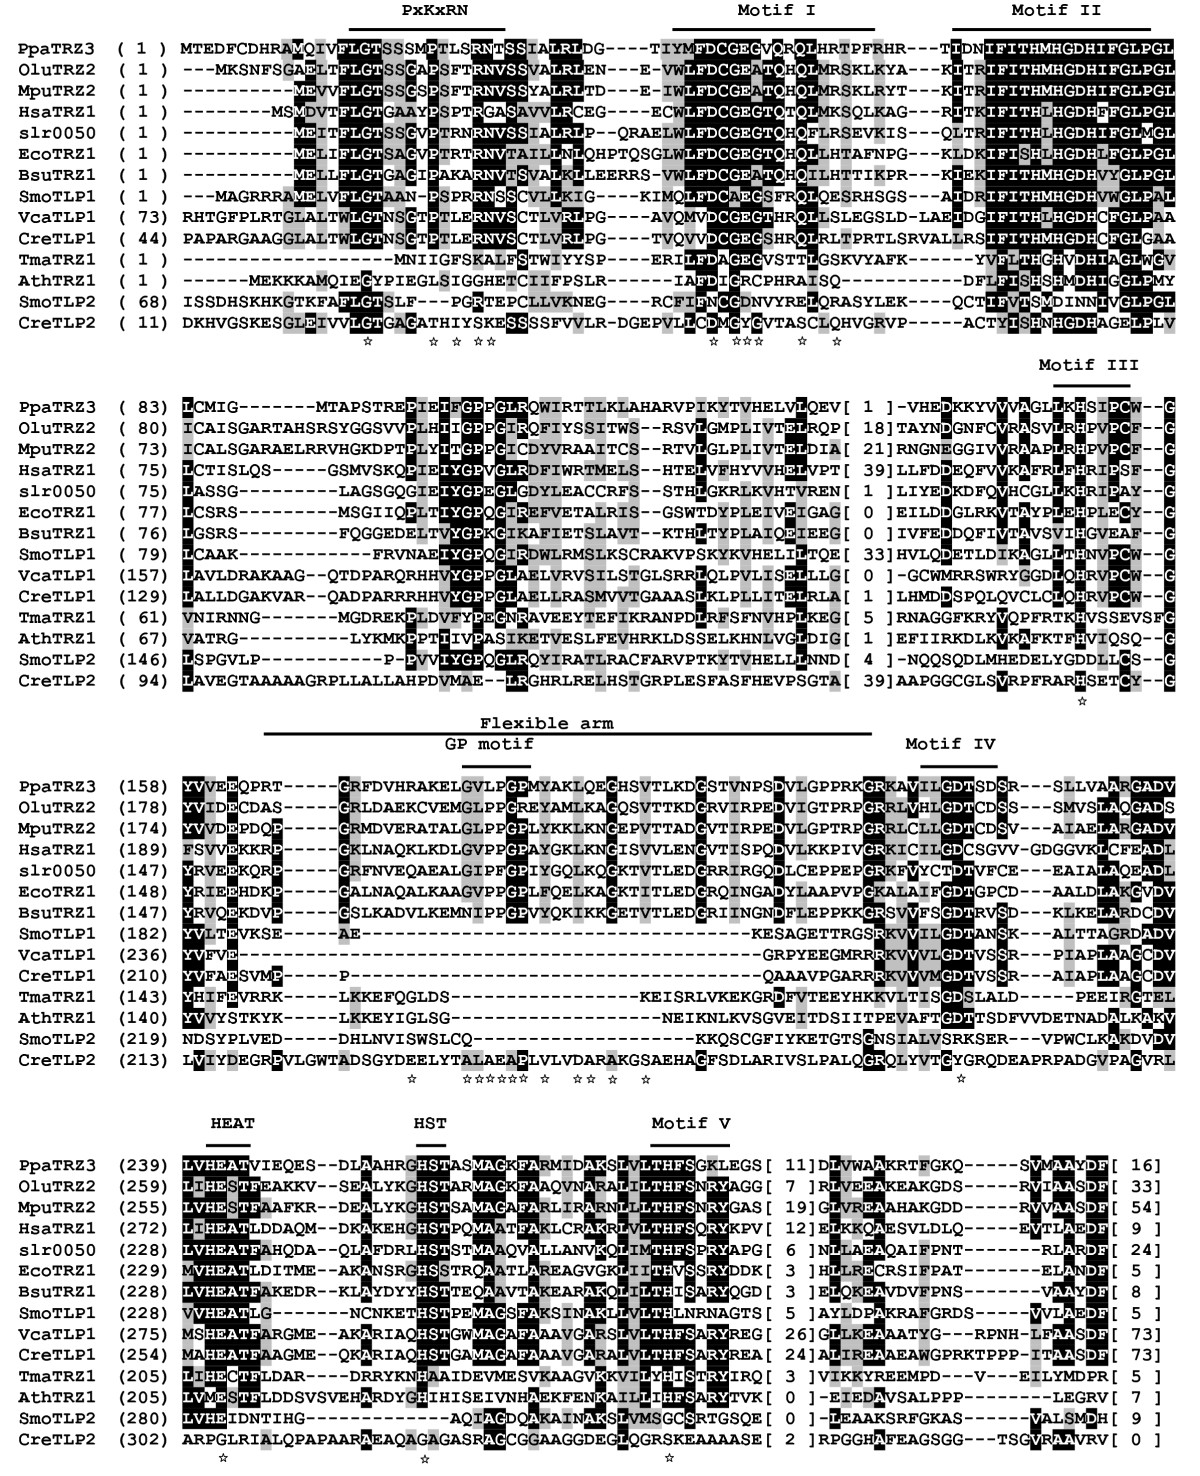 http://static-content.springer.com/image/art%3A10.1186%2F1471-2148-11-219/MediaObjects/12862_2011_1825_Fig1_HTML.jpg